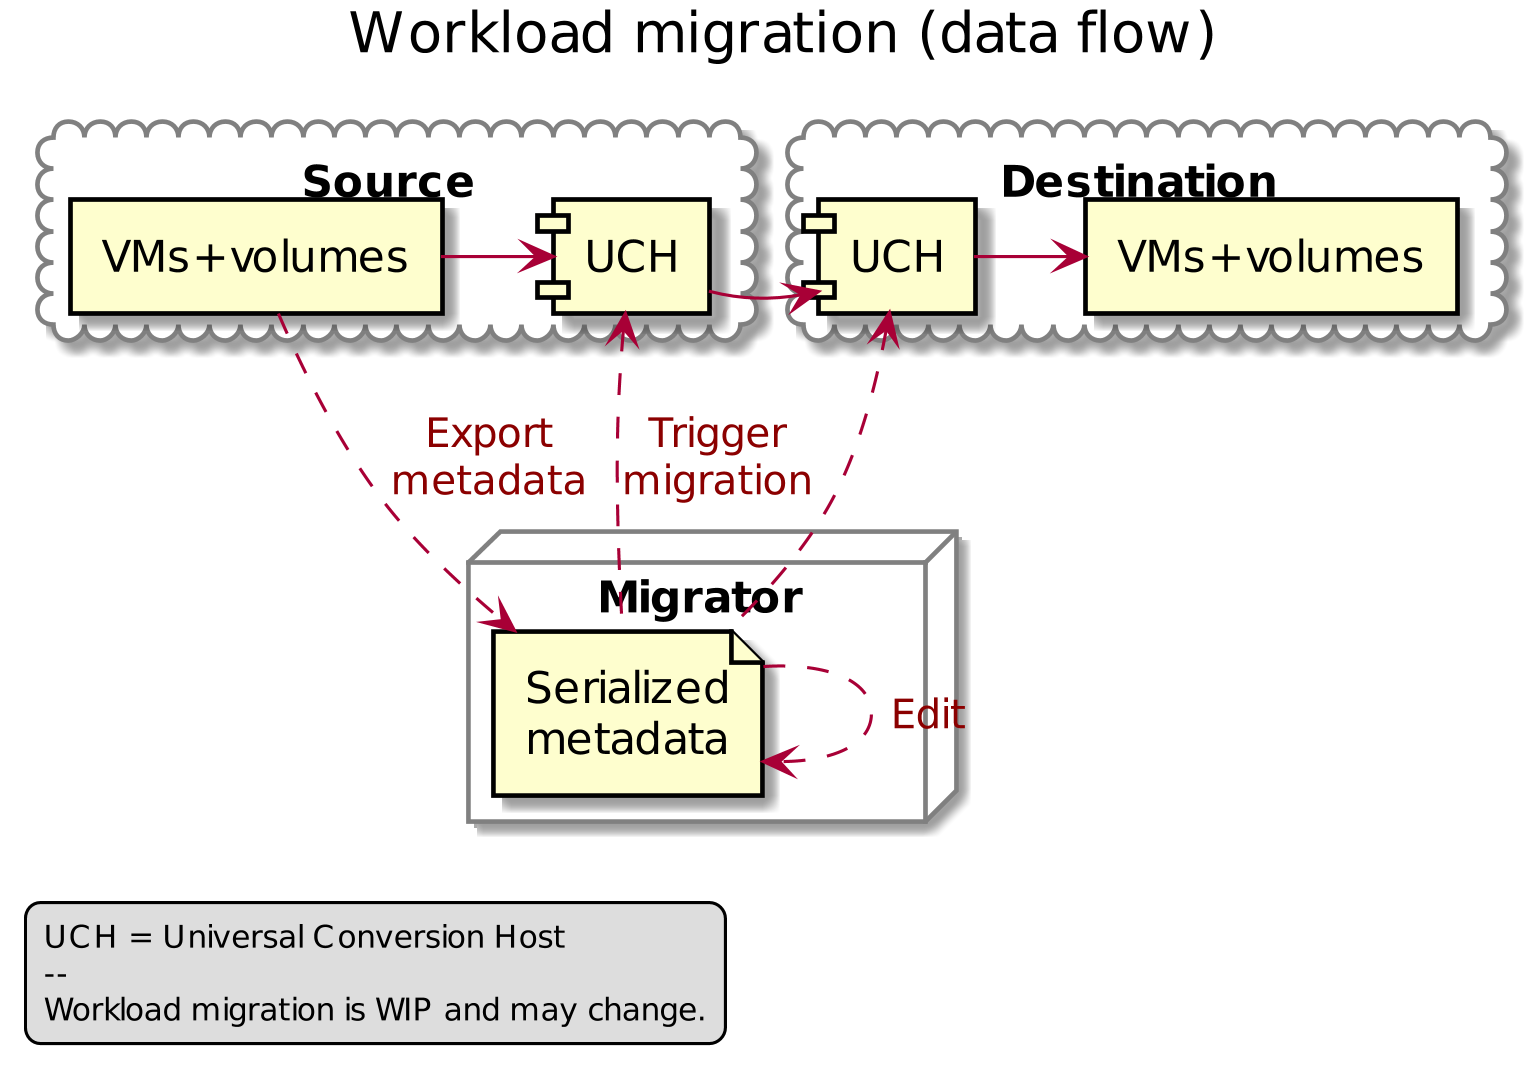 Workload migration (data flow)